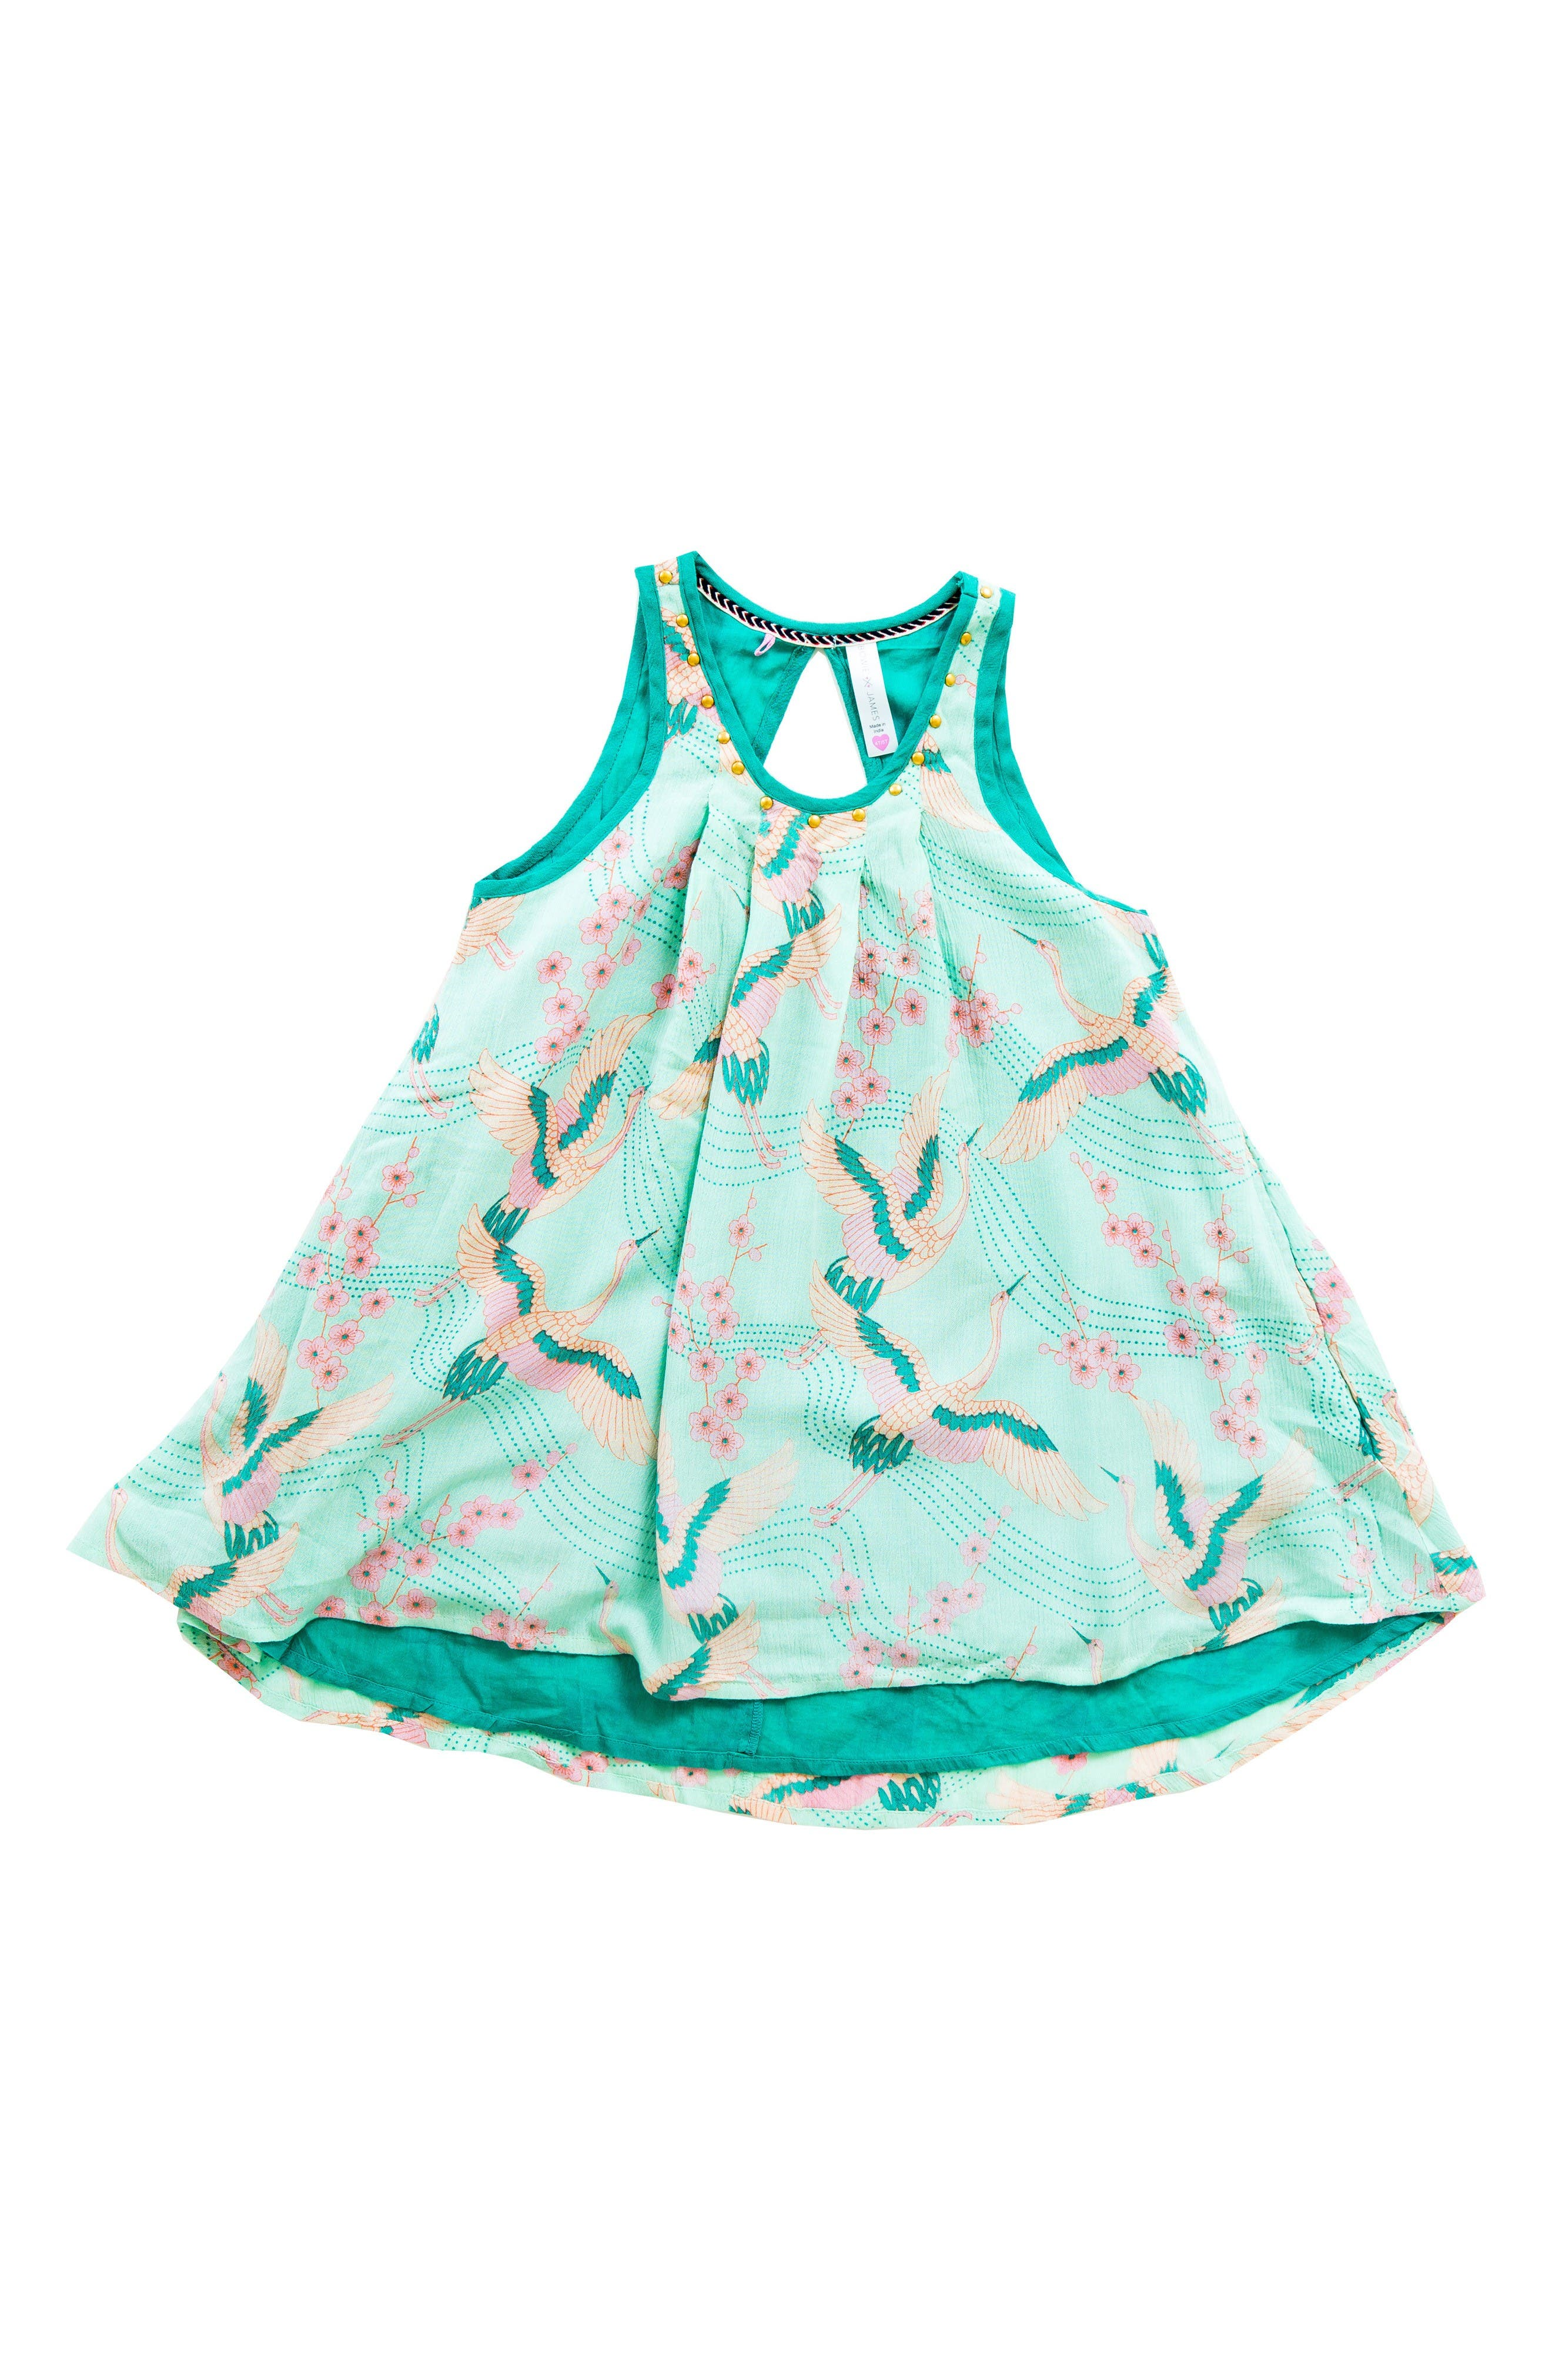 BOWIE X JAMES Print Trapeze Dress (Toddler Girls, Little Girls & Big Girls)